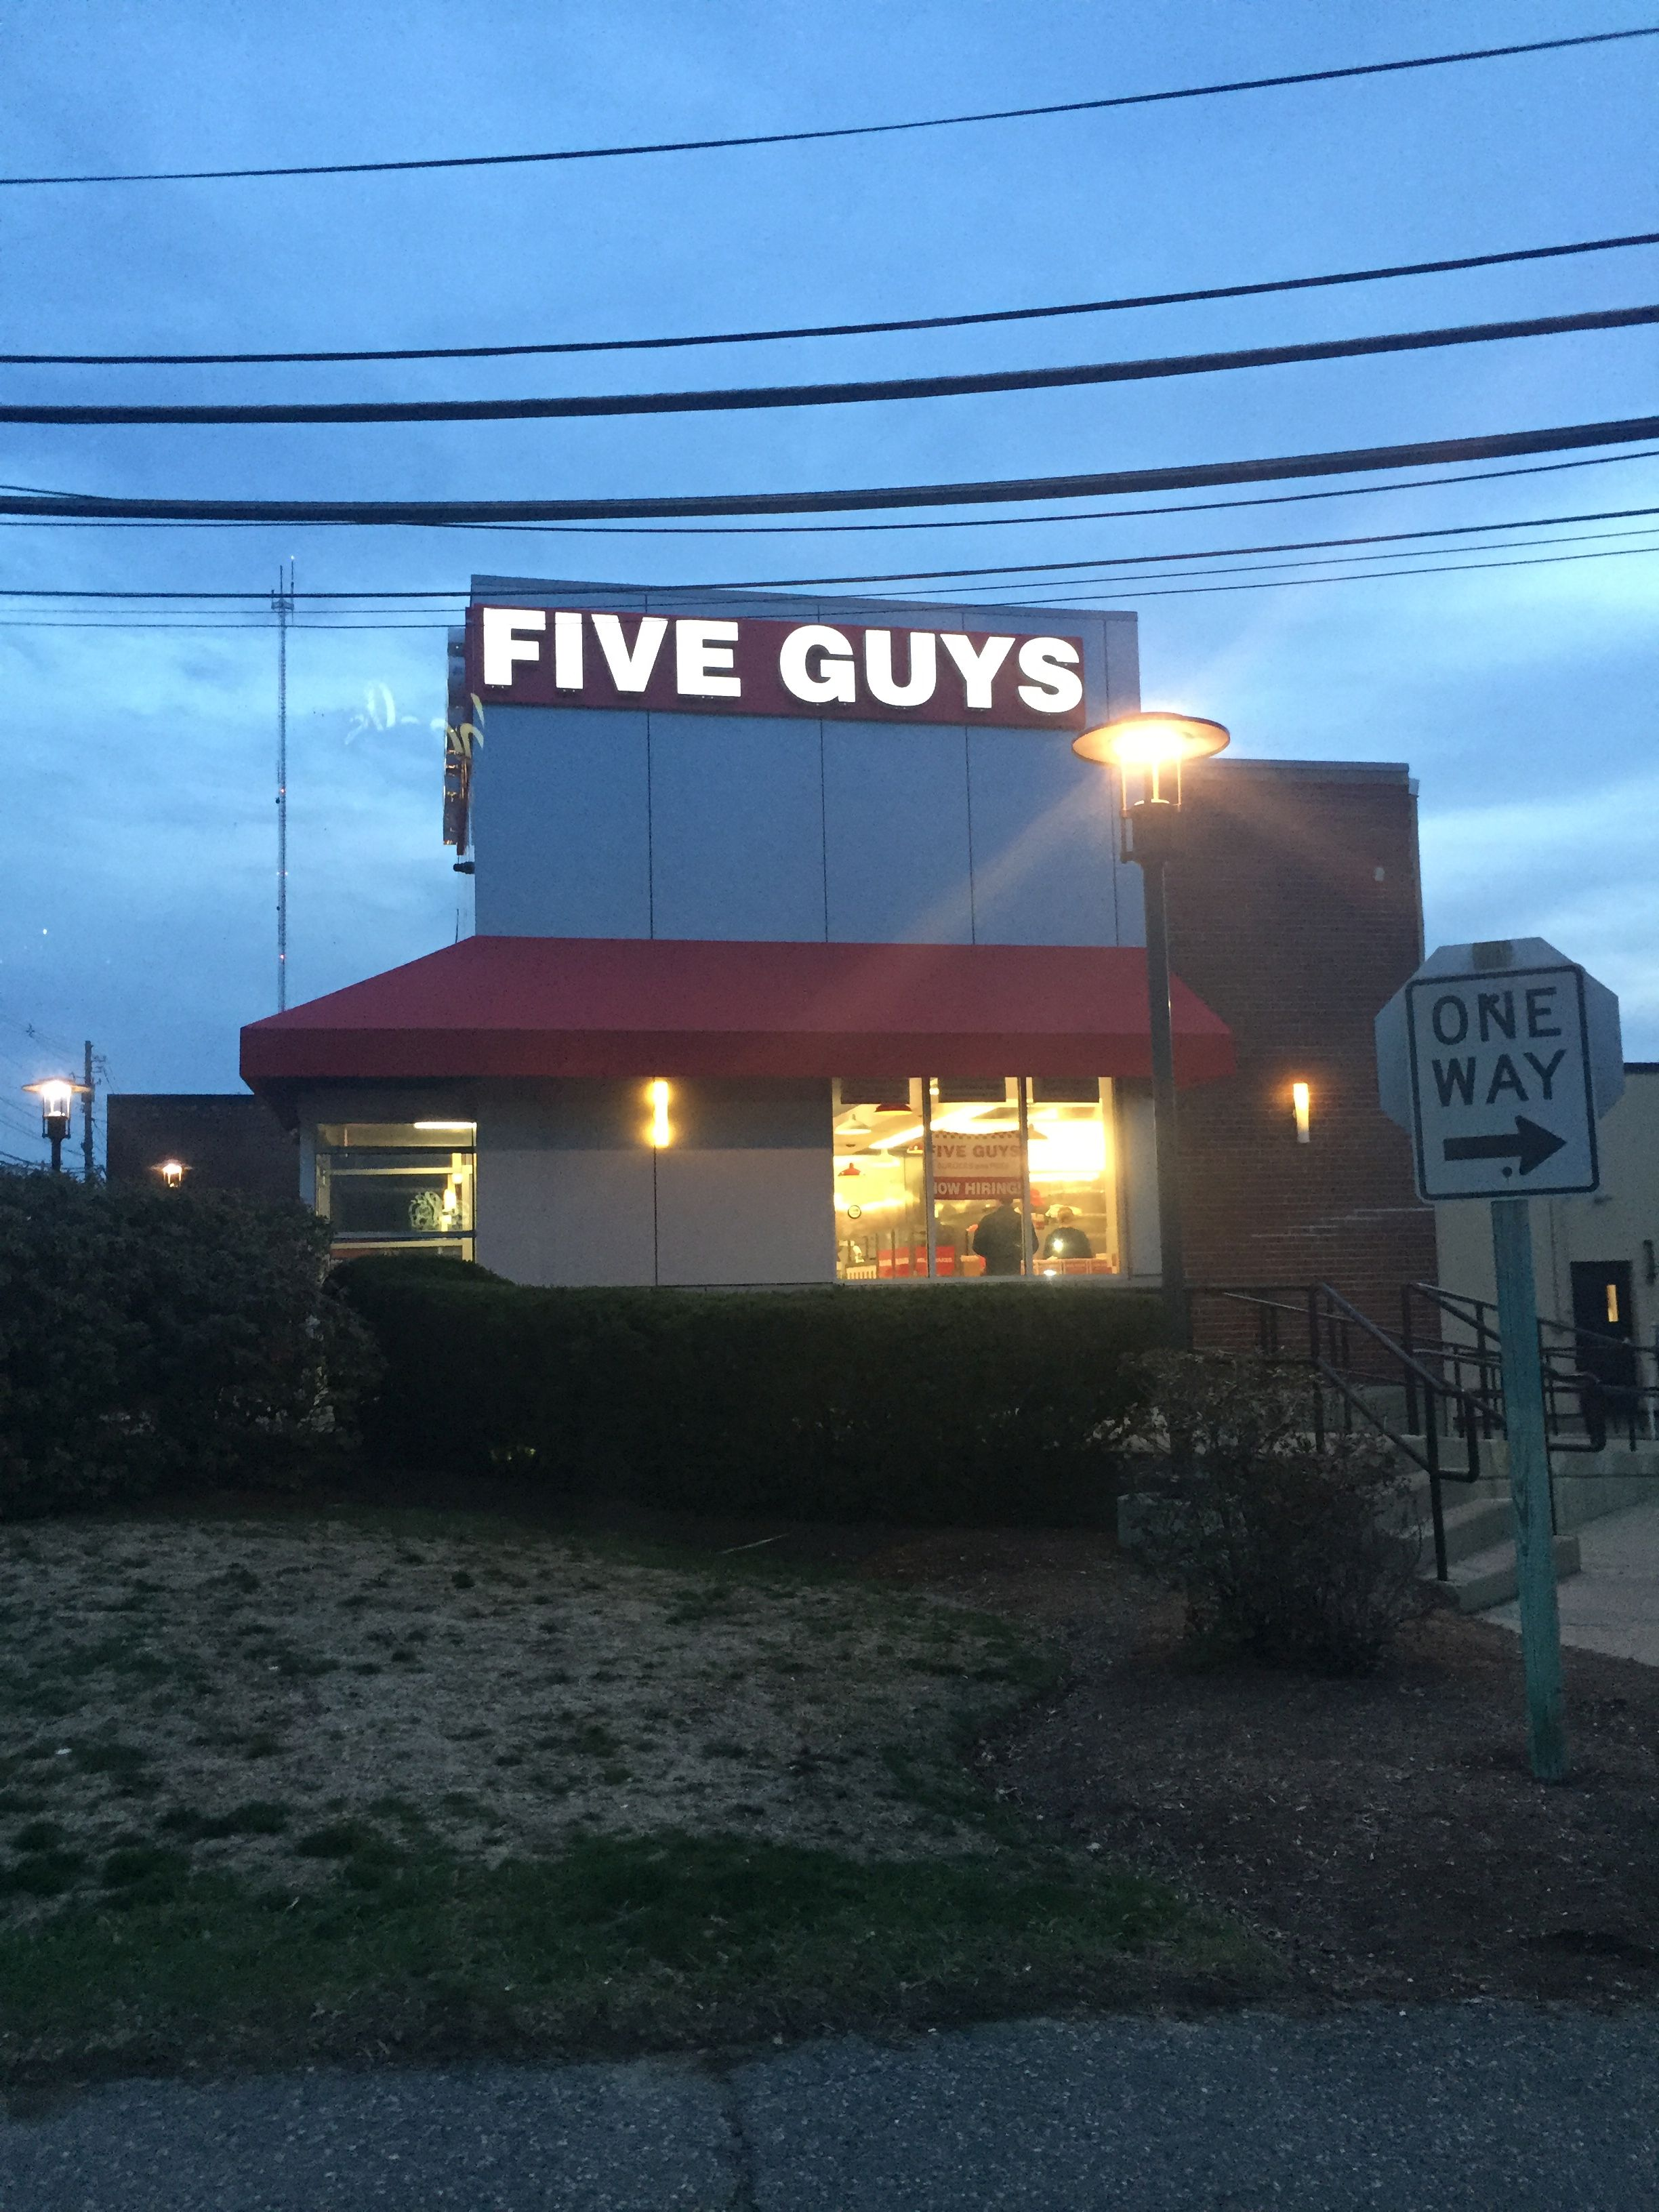 Is Five Guys Considered Fast Food